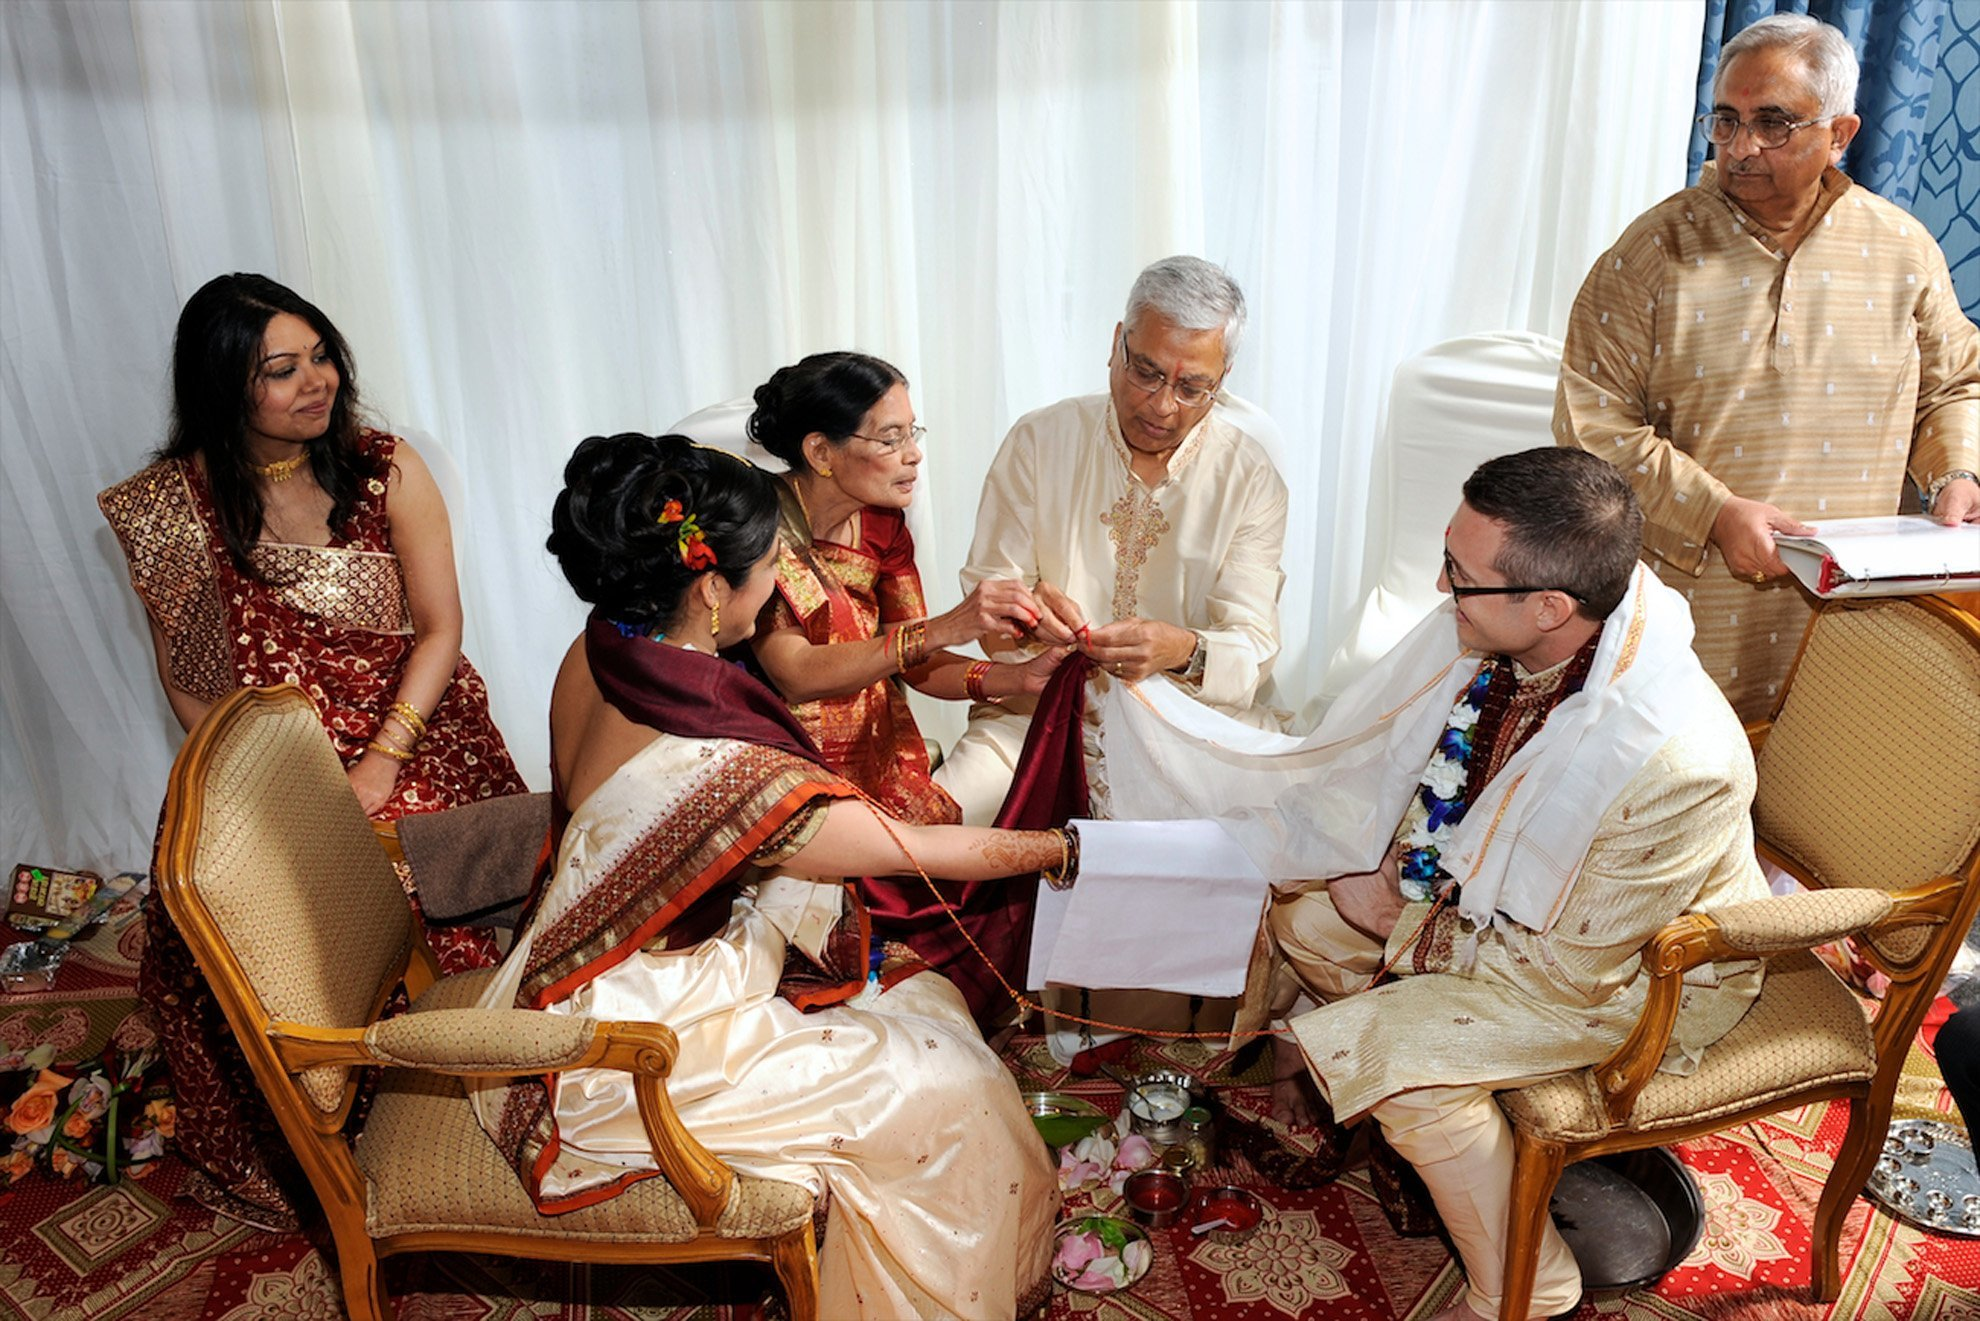 Hindu wedding ceremony at Glen Cairn